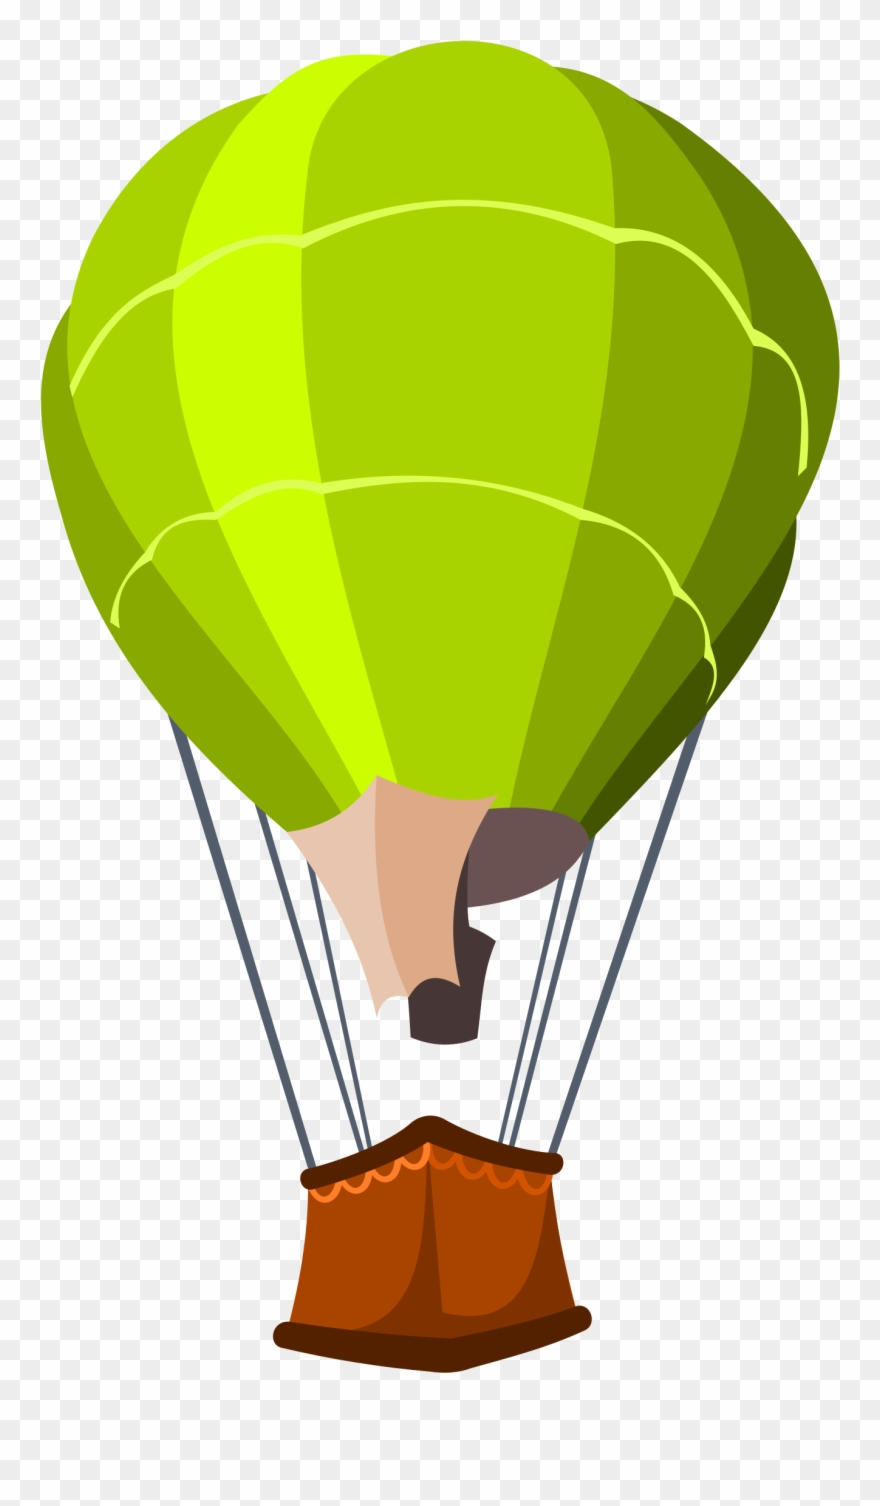 Hot Air Balloon Drawing Computer Icons Download.